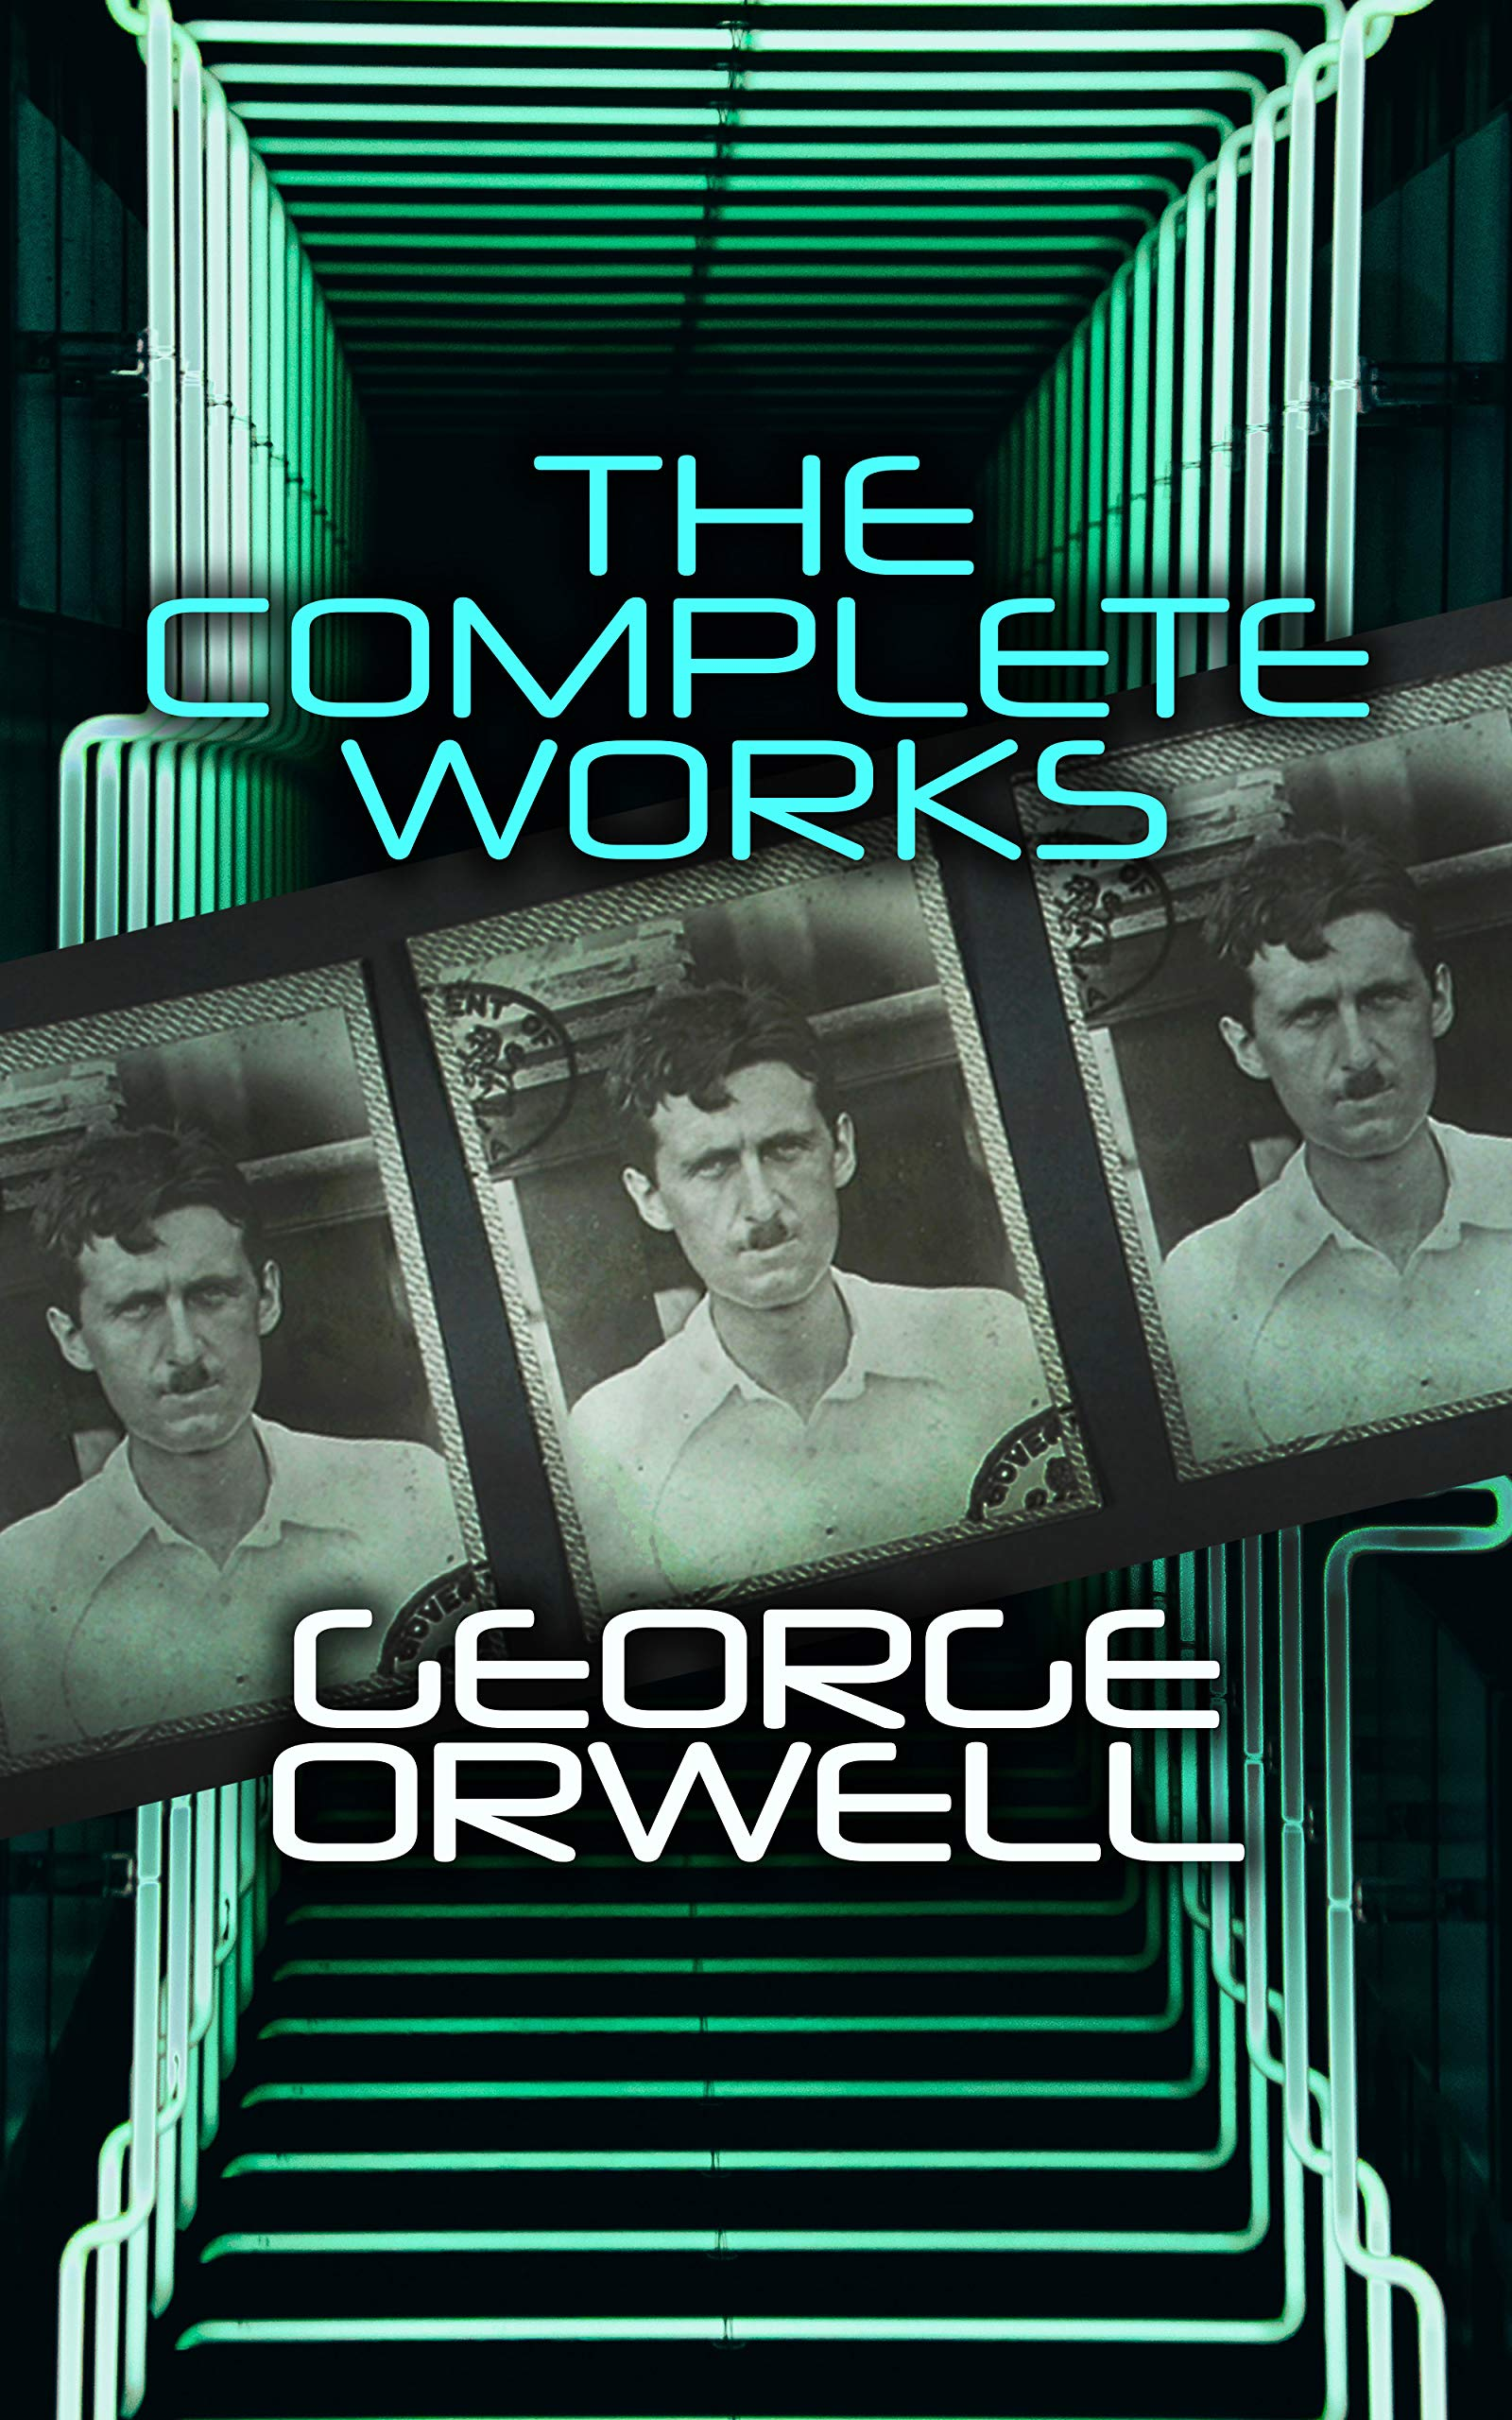 The Complete Works: Novels, Memoirs, Poetry, Essays, Book Reviews & Articles: 1984, Animal Farm, Down and Out in Paris and London, Prophecies of Fascism…